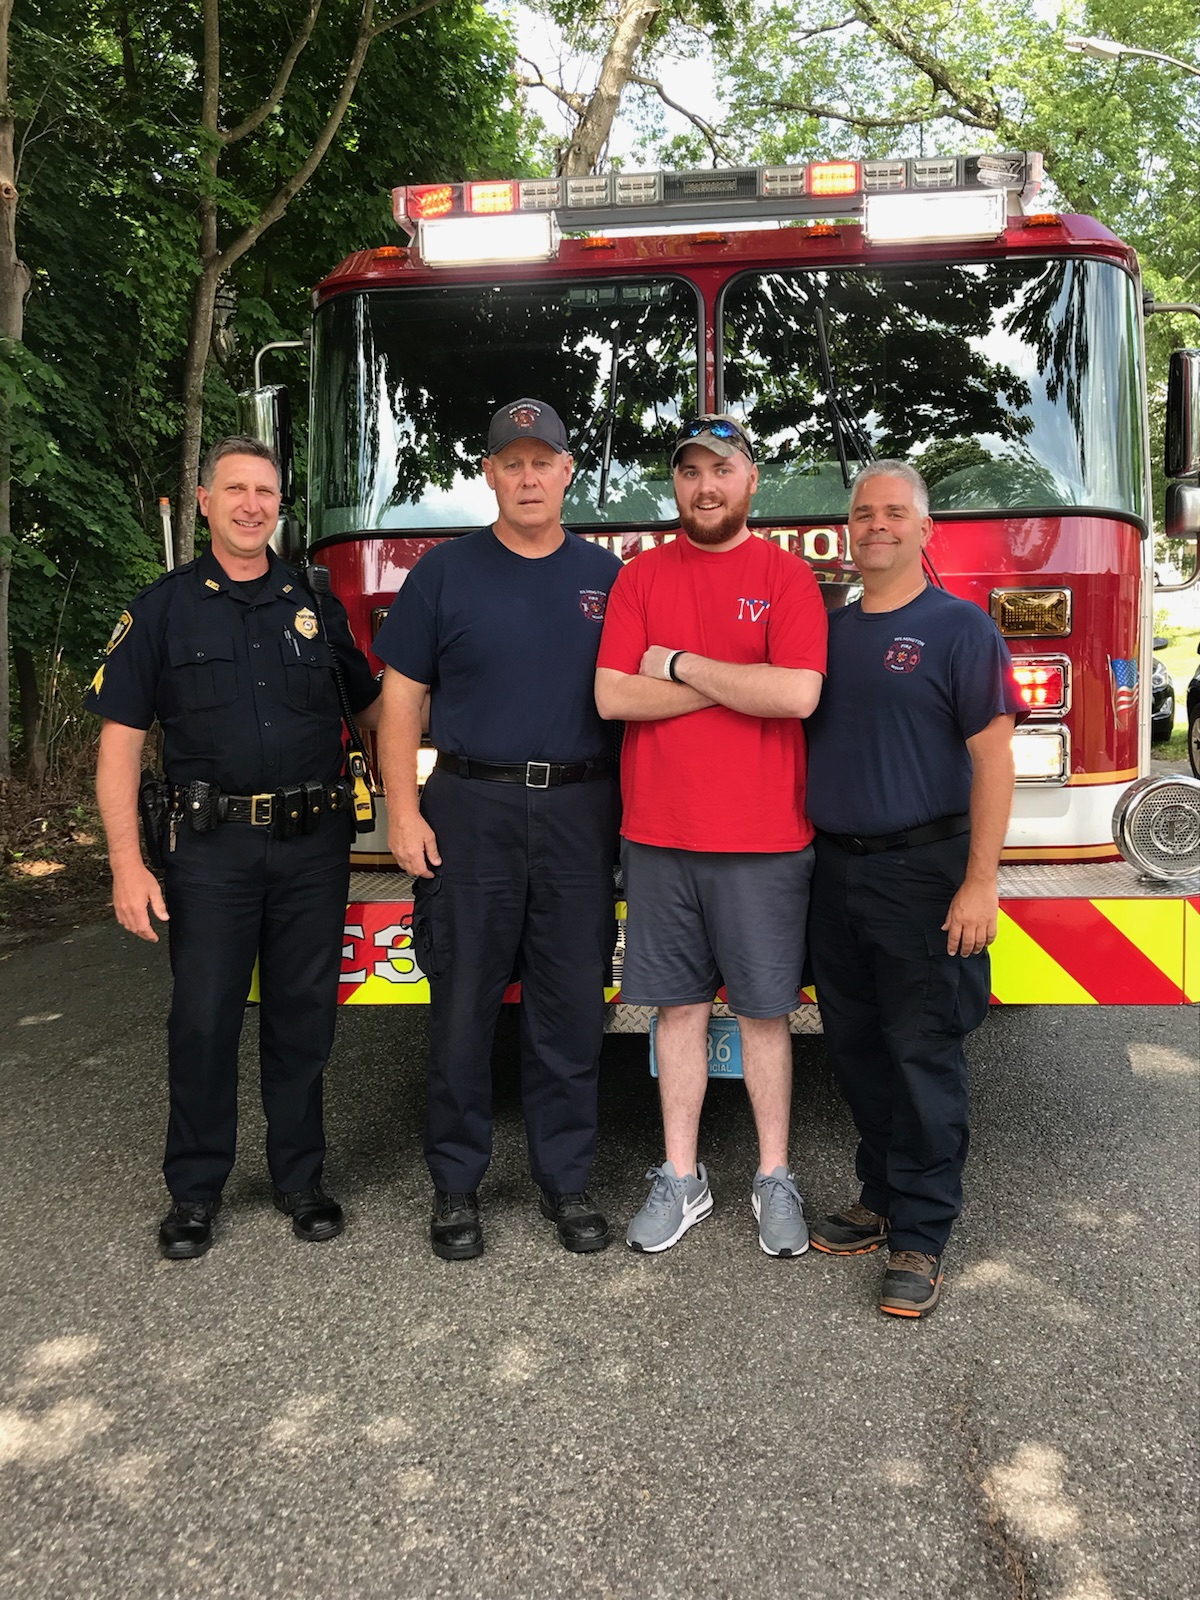 LETTER TO THE EDITOR: Family Thanks Wilmington Police & Fire